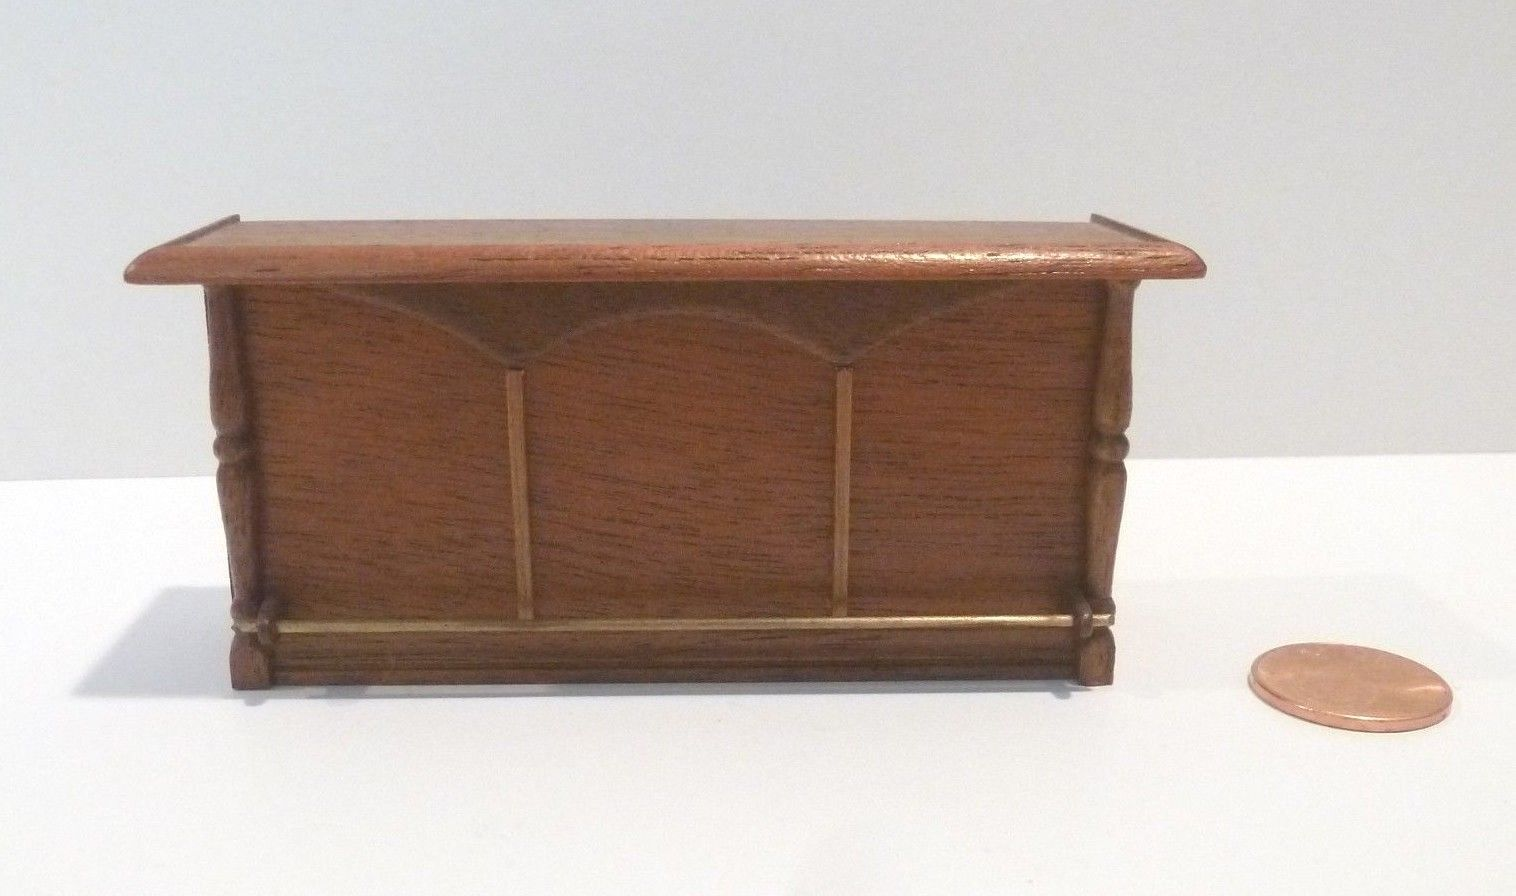 RAE MINIATURE 1 2  SCALE BAR  SIGNED   DATED 1985